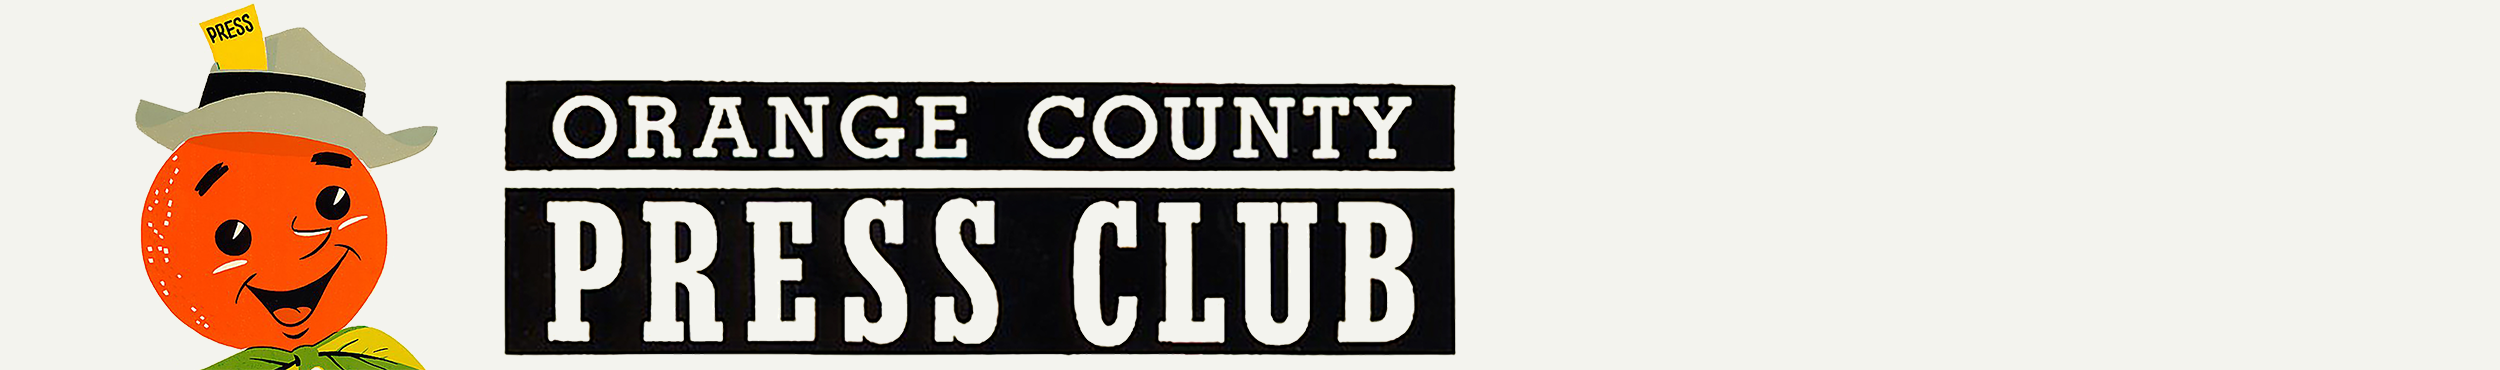 OC Press Club Logo